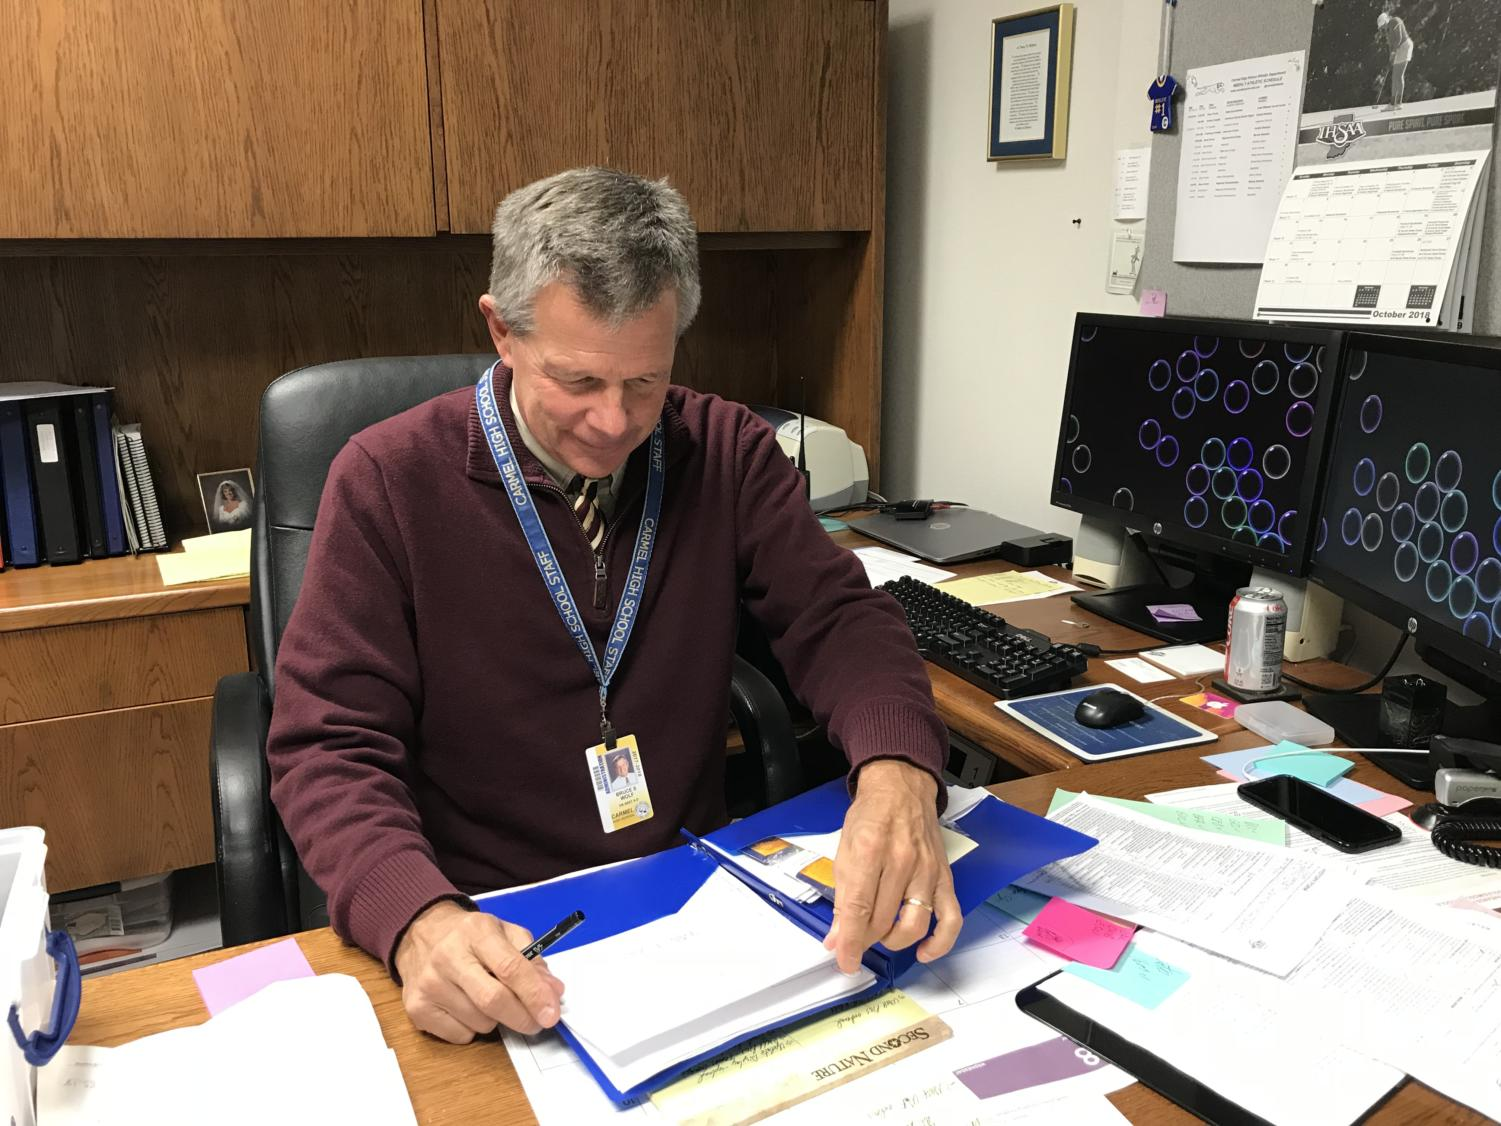 Champions Together co-sponsor Bruce Wolf flips through athletic awards. He said,